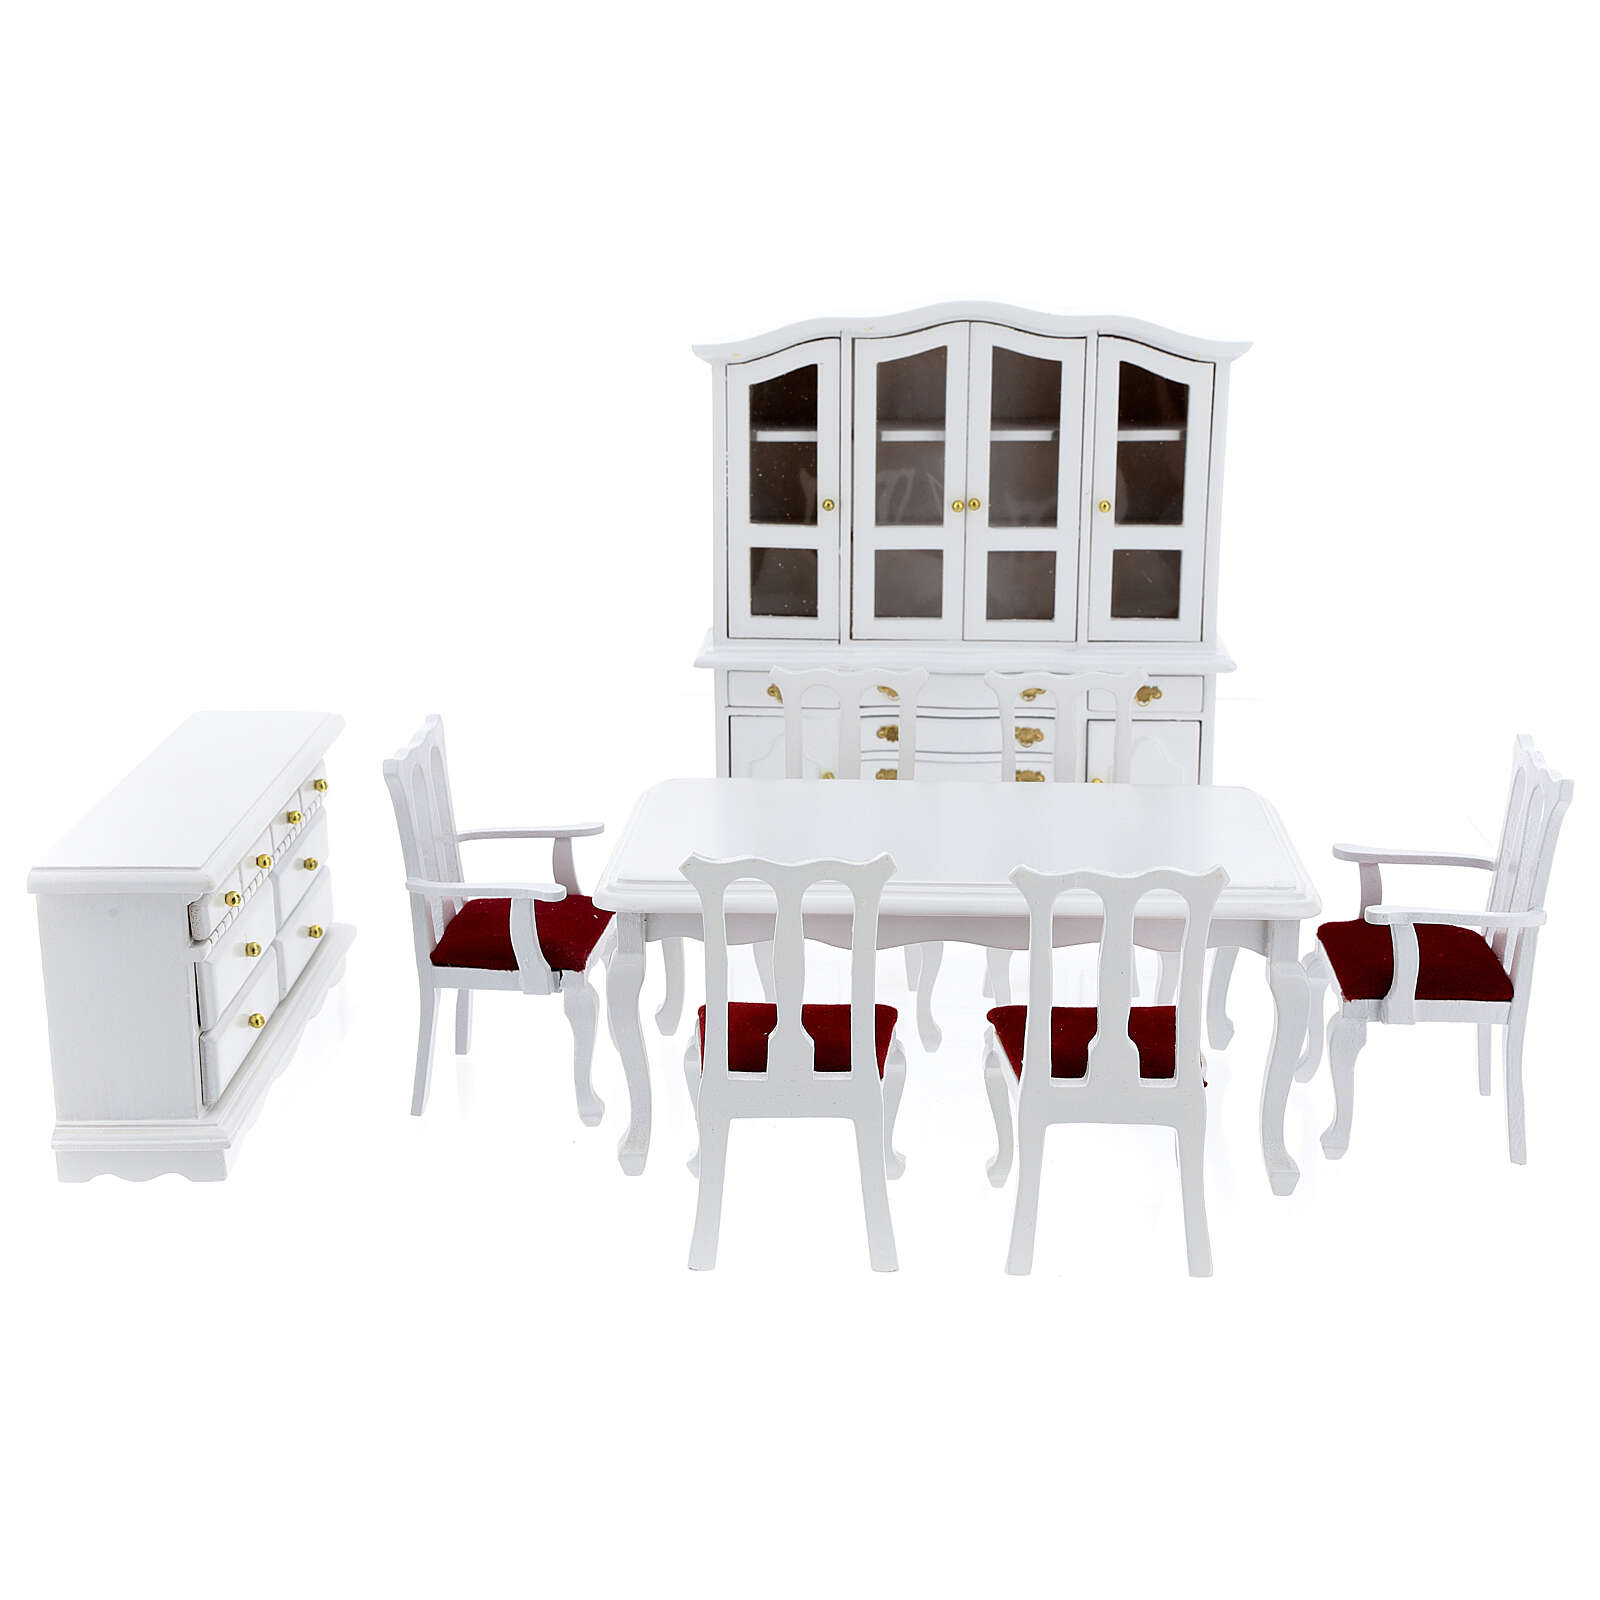 White wood furniture 9 items for Nativity Scene with 12-14 cm figurines 4